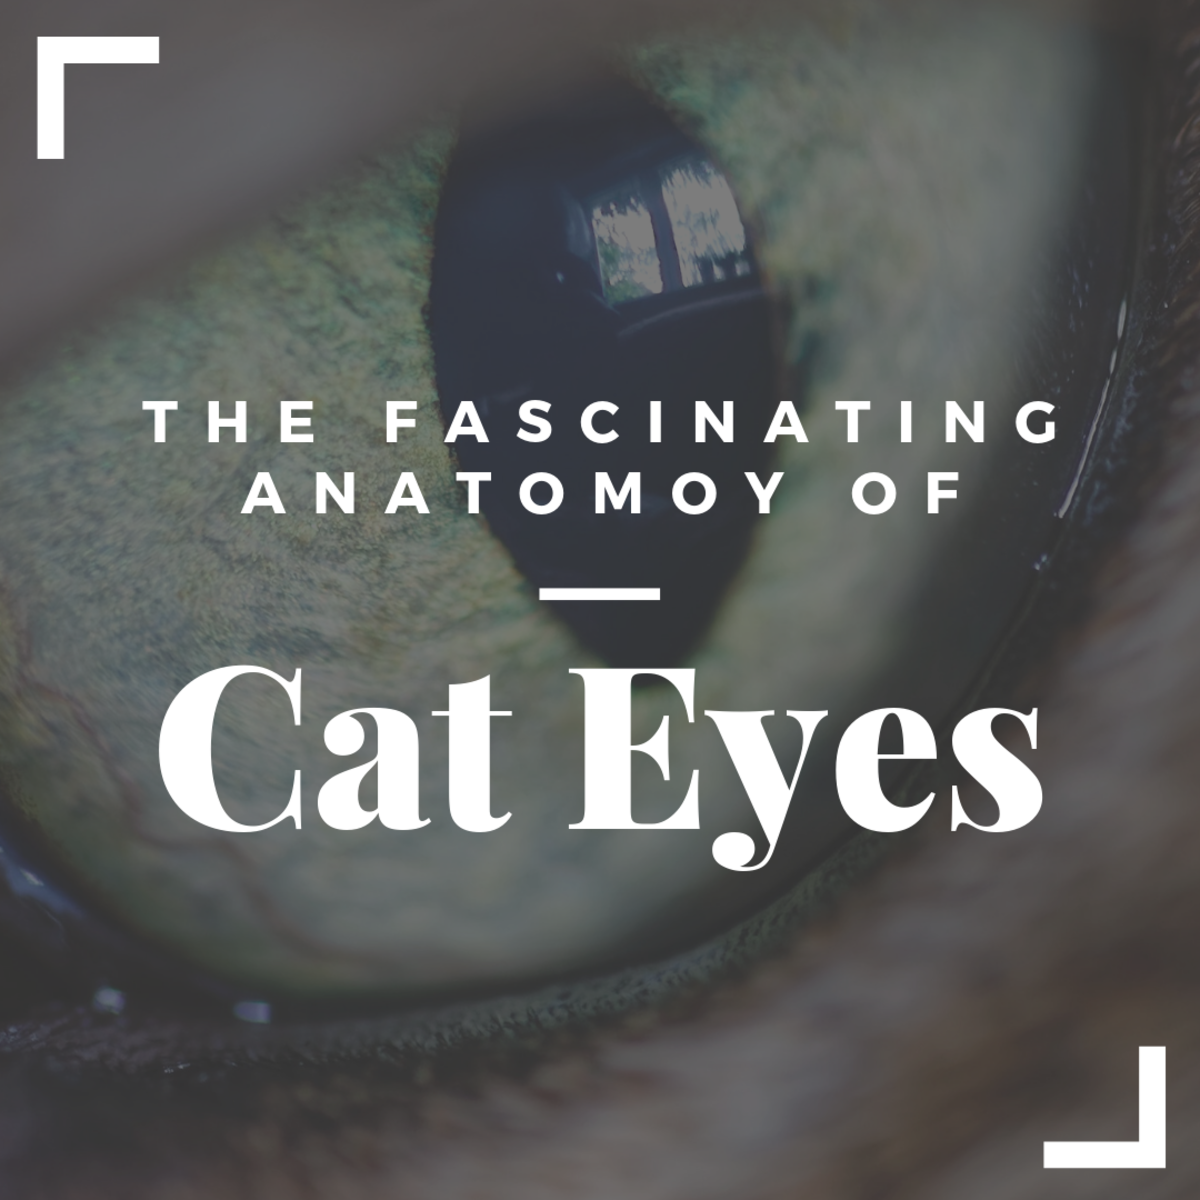 Cats' eyes are extremely complex. They evolved to help them survive in the wild.